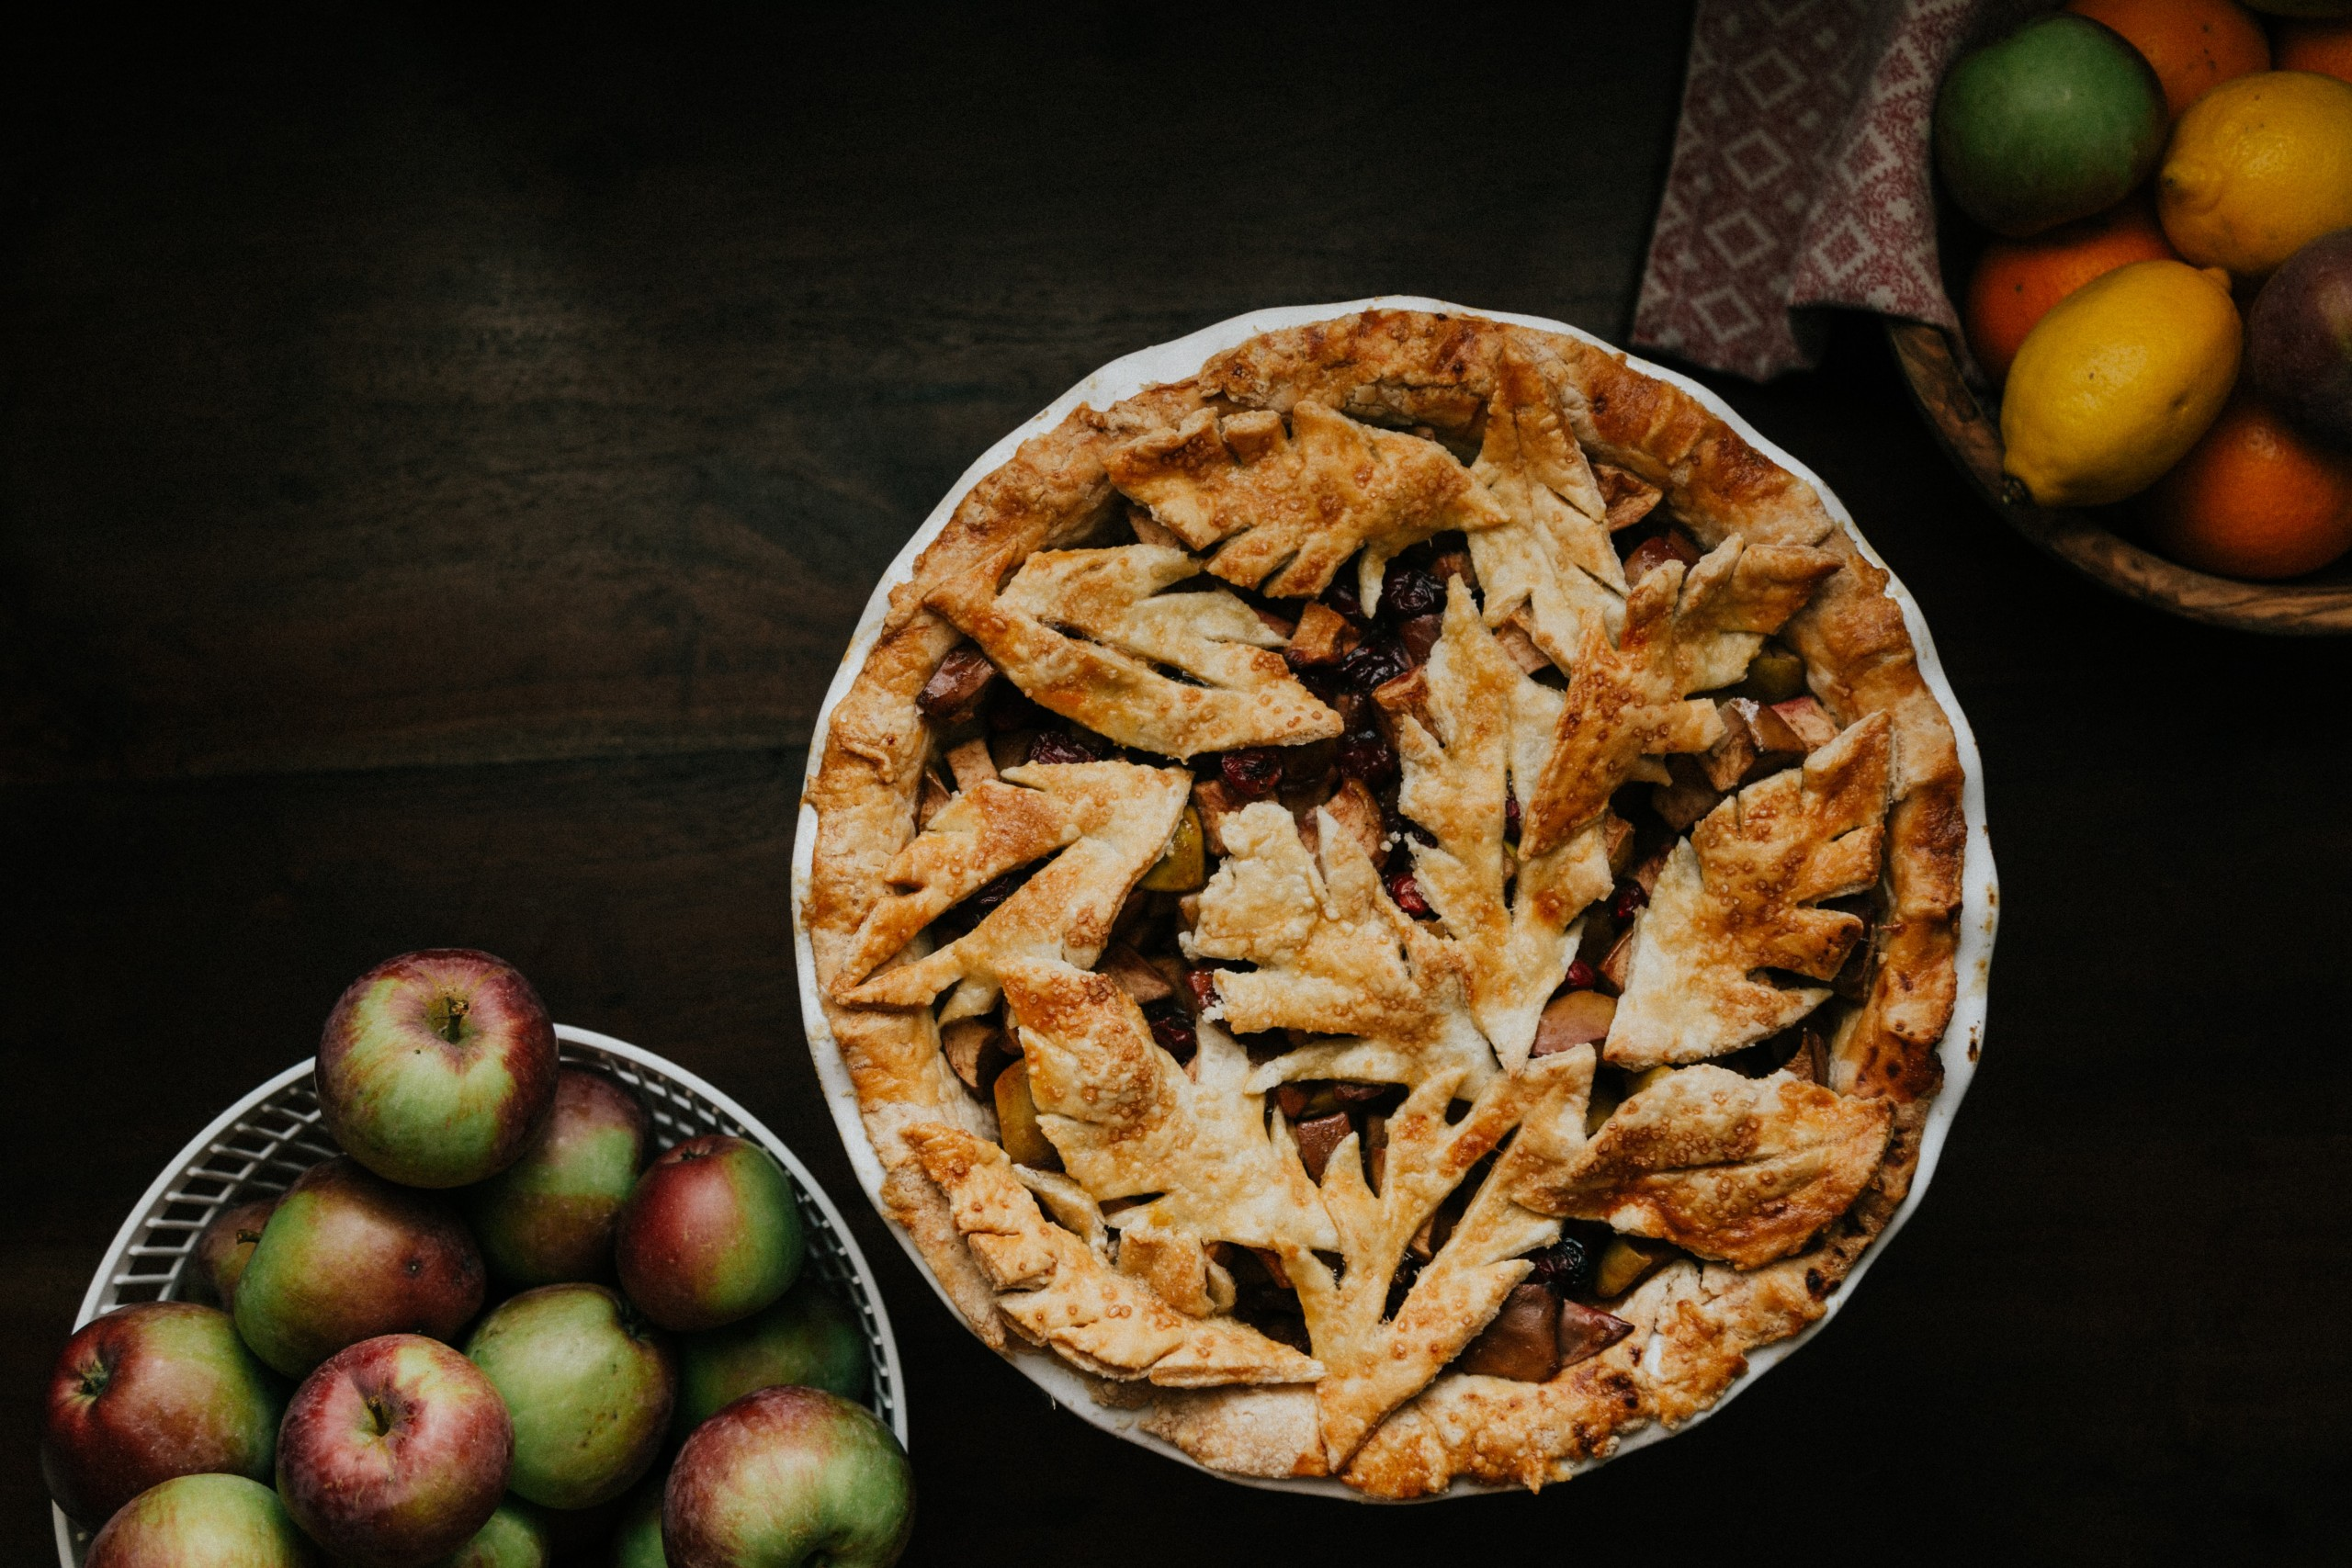 Apple Pie on Table with bowls of fruit next to it.